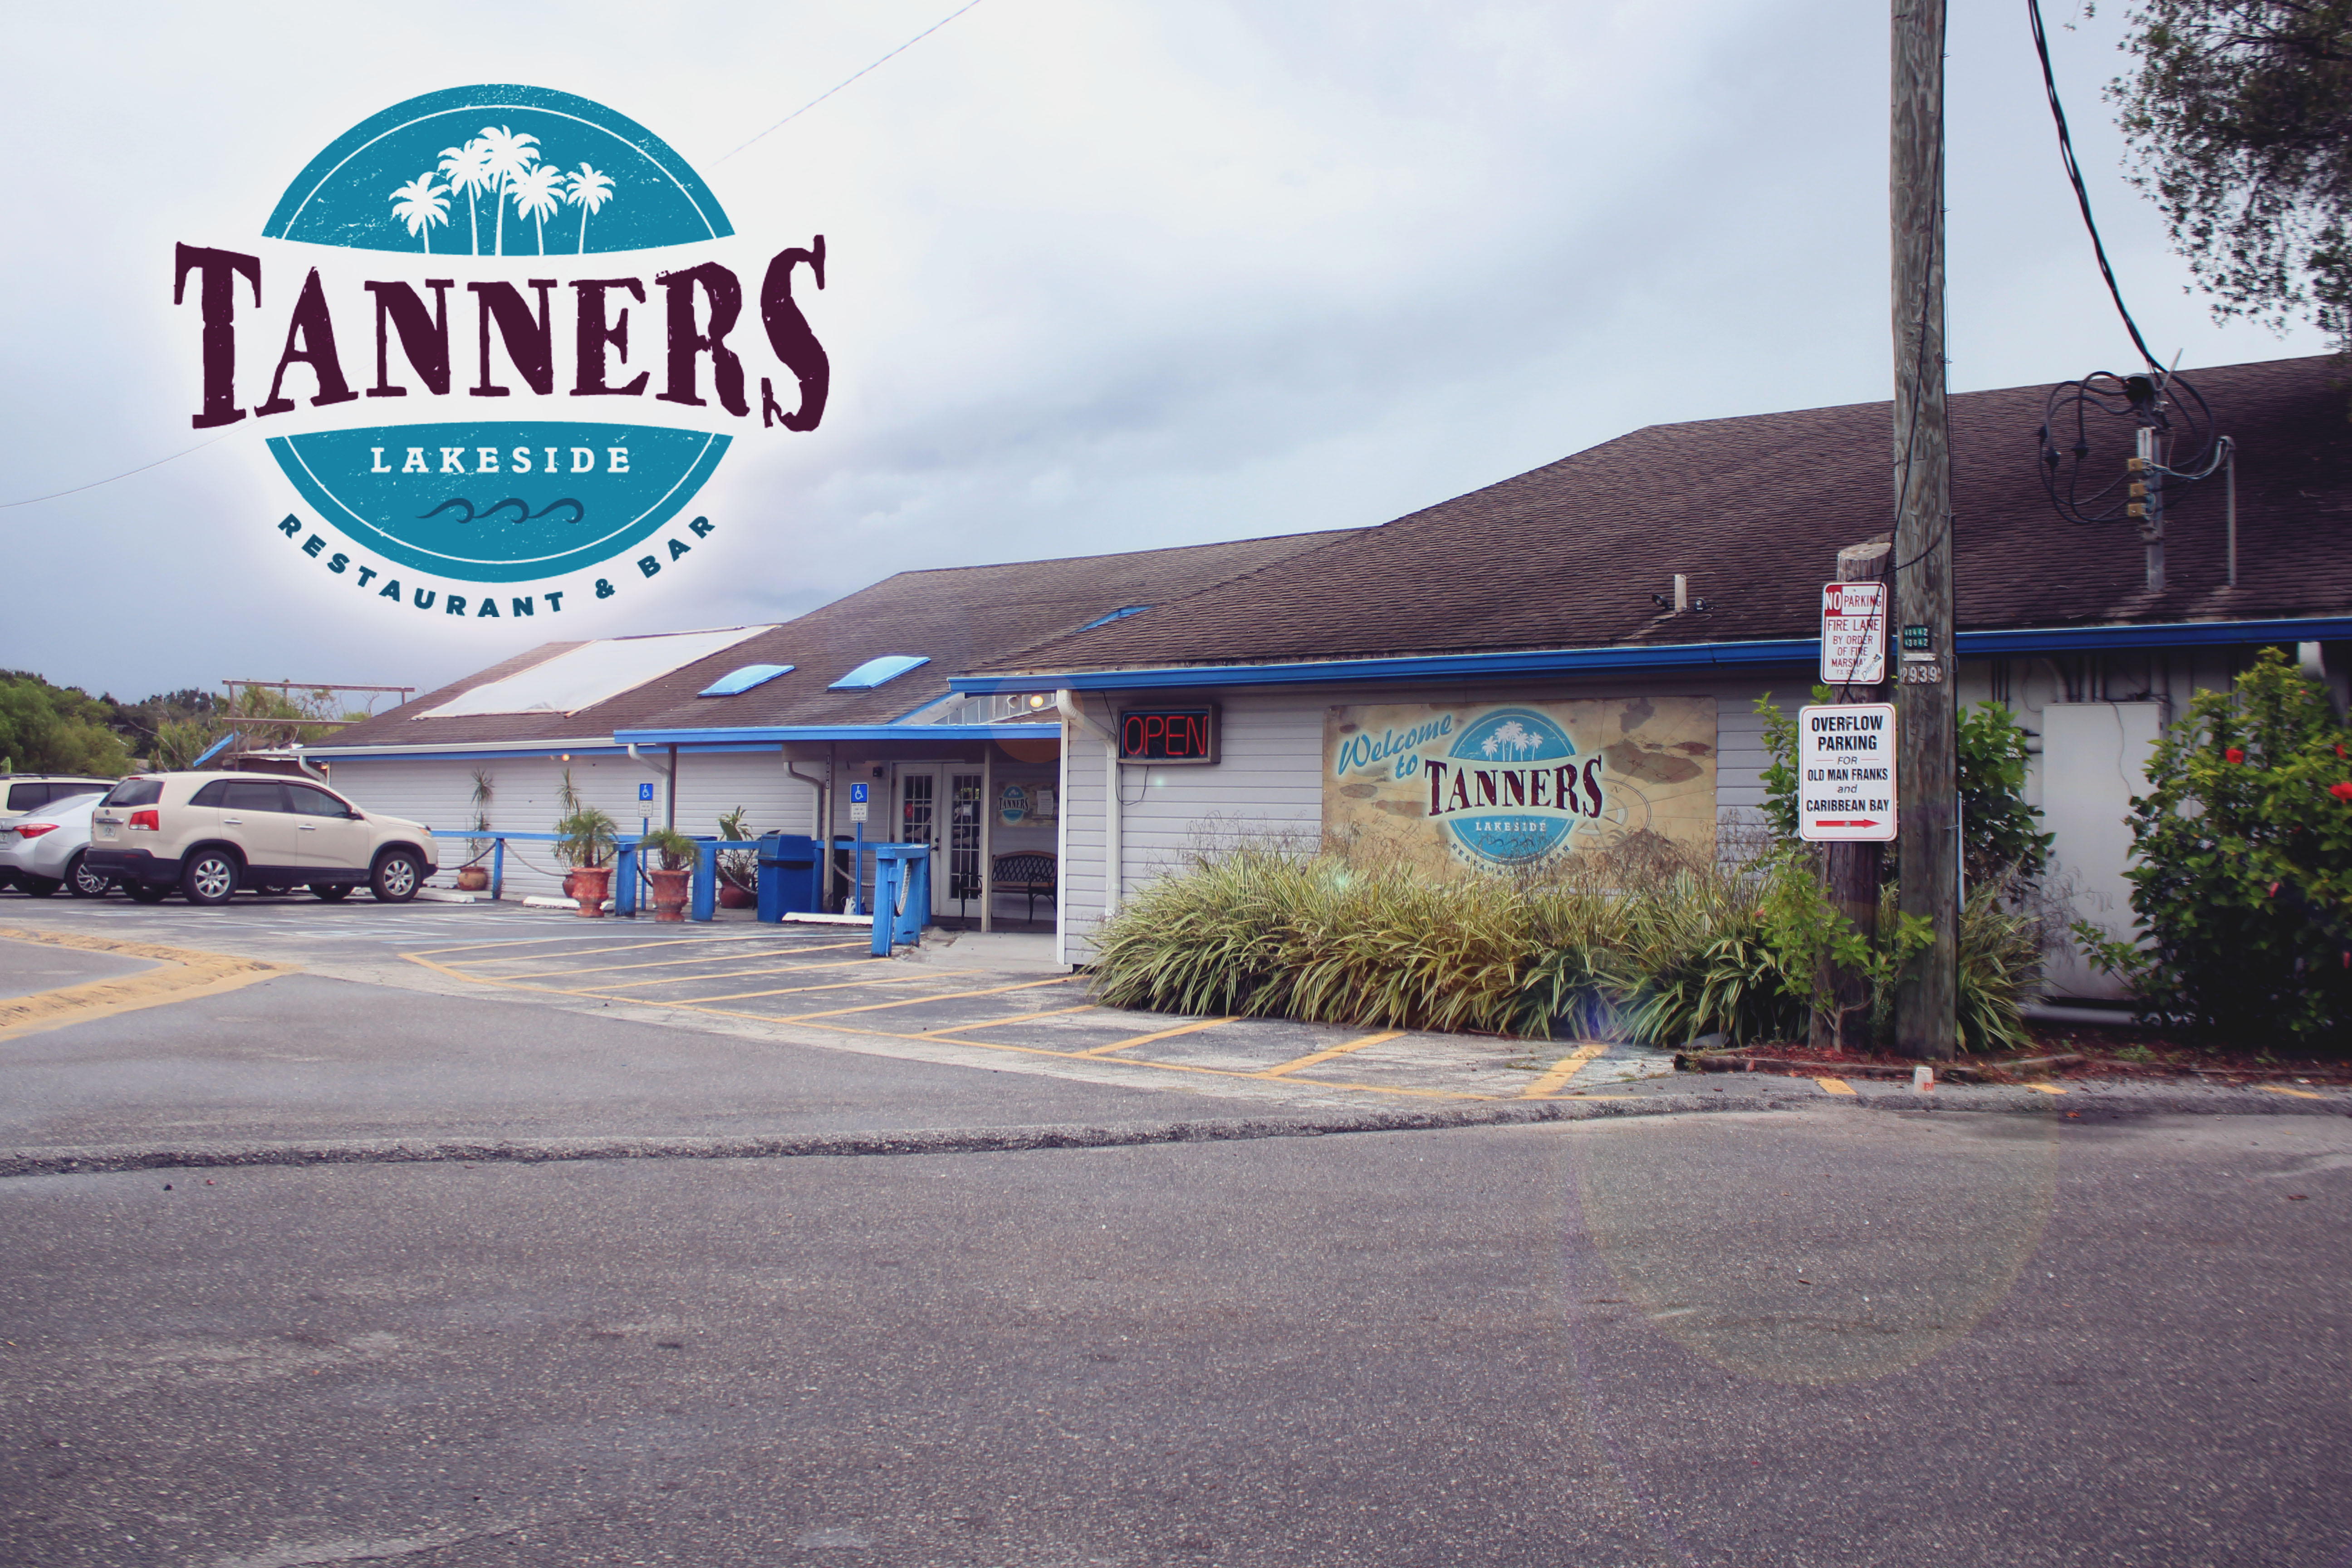 Welcome To Tanner S Lakeside Located In Winter Haven Florida We Offer Great Live Music Amazing Food And A Satisfying Full Liquor Bar